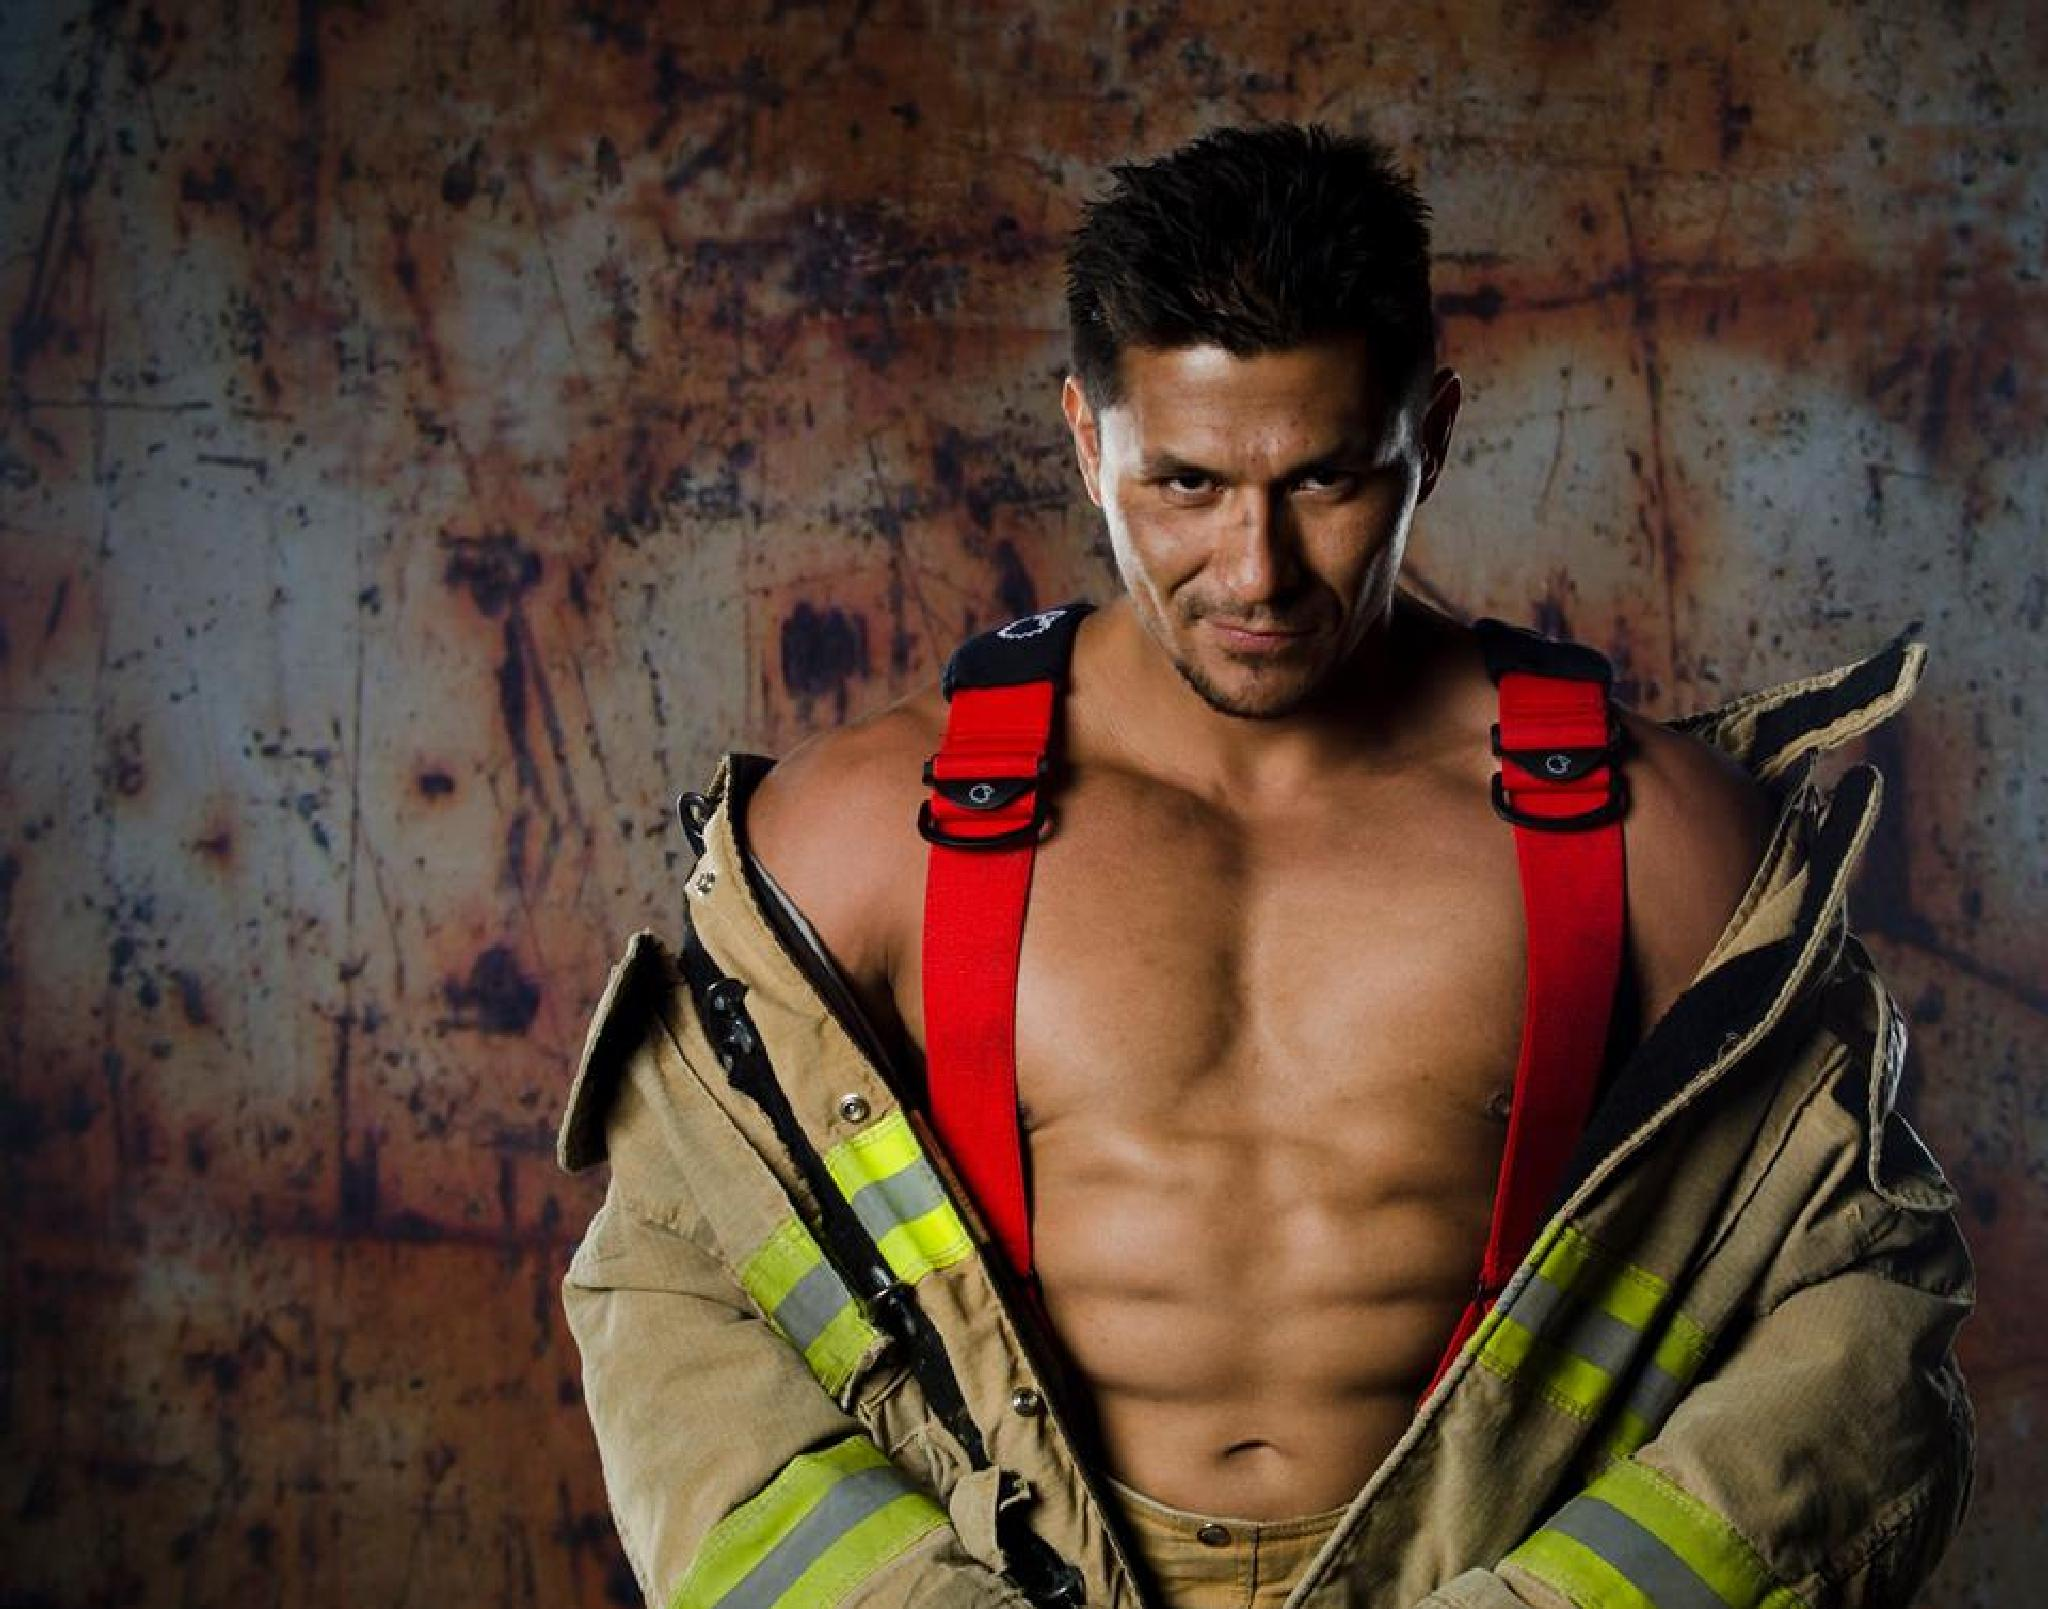 The Firefighter by Steve Forbes